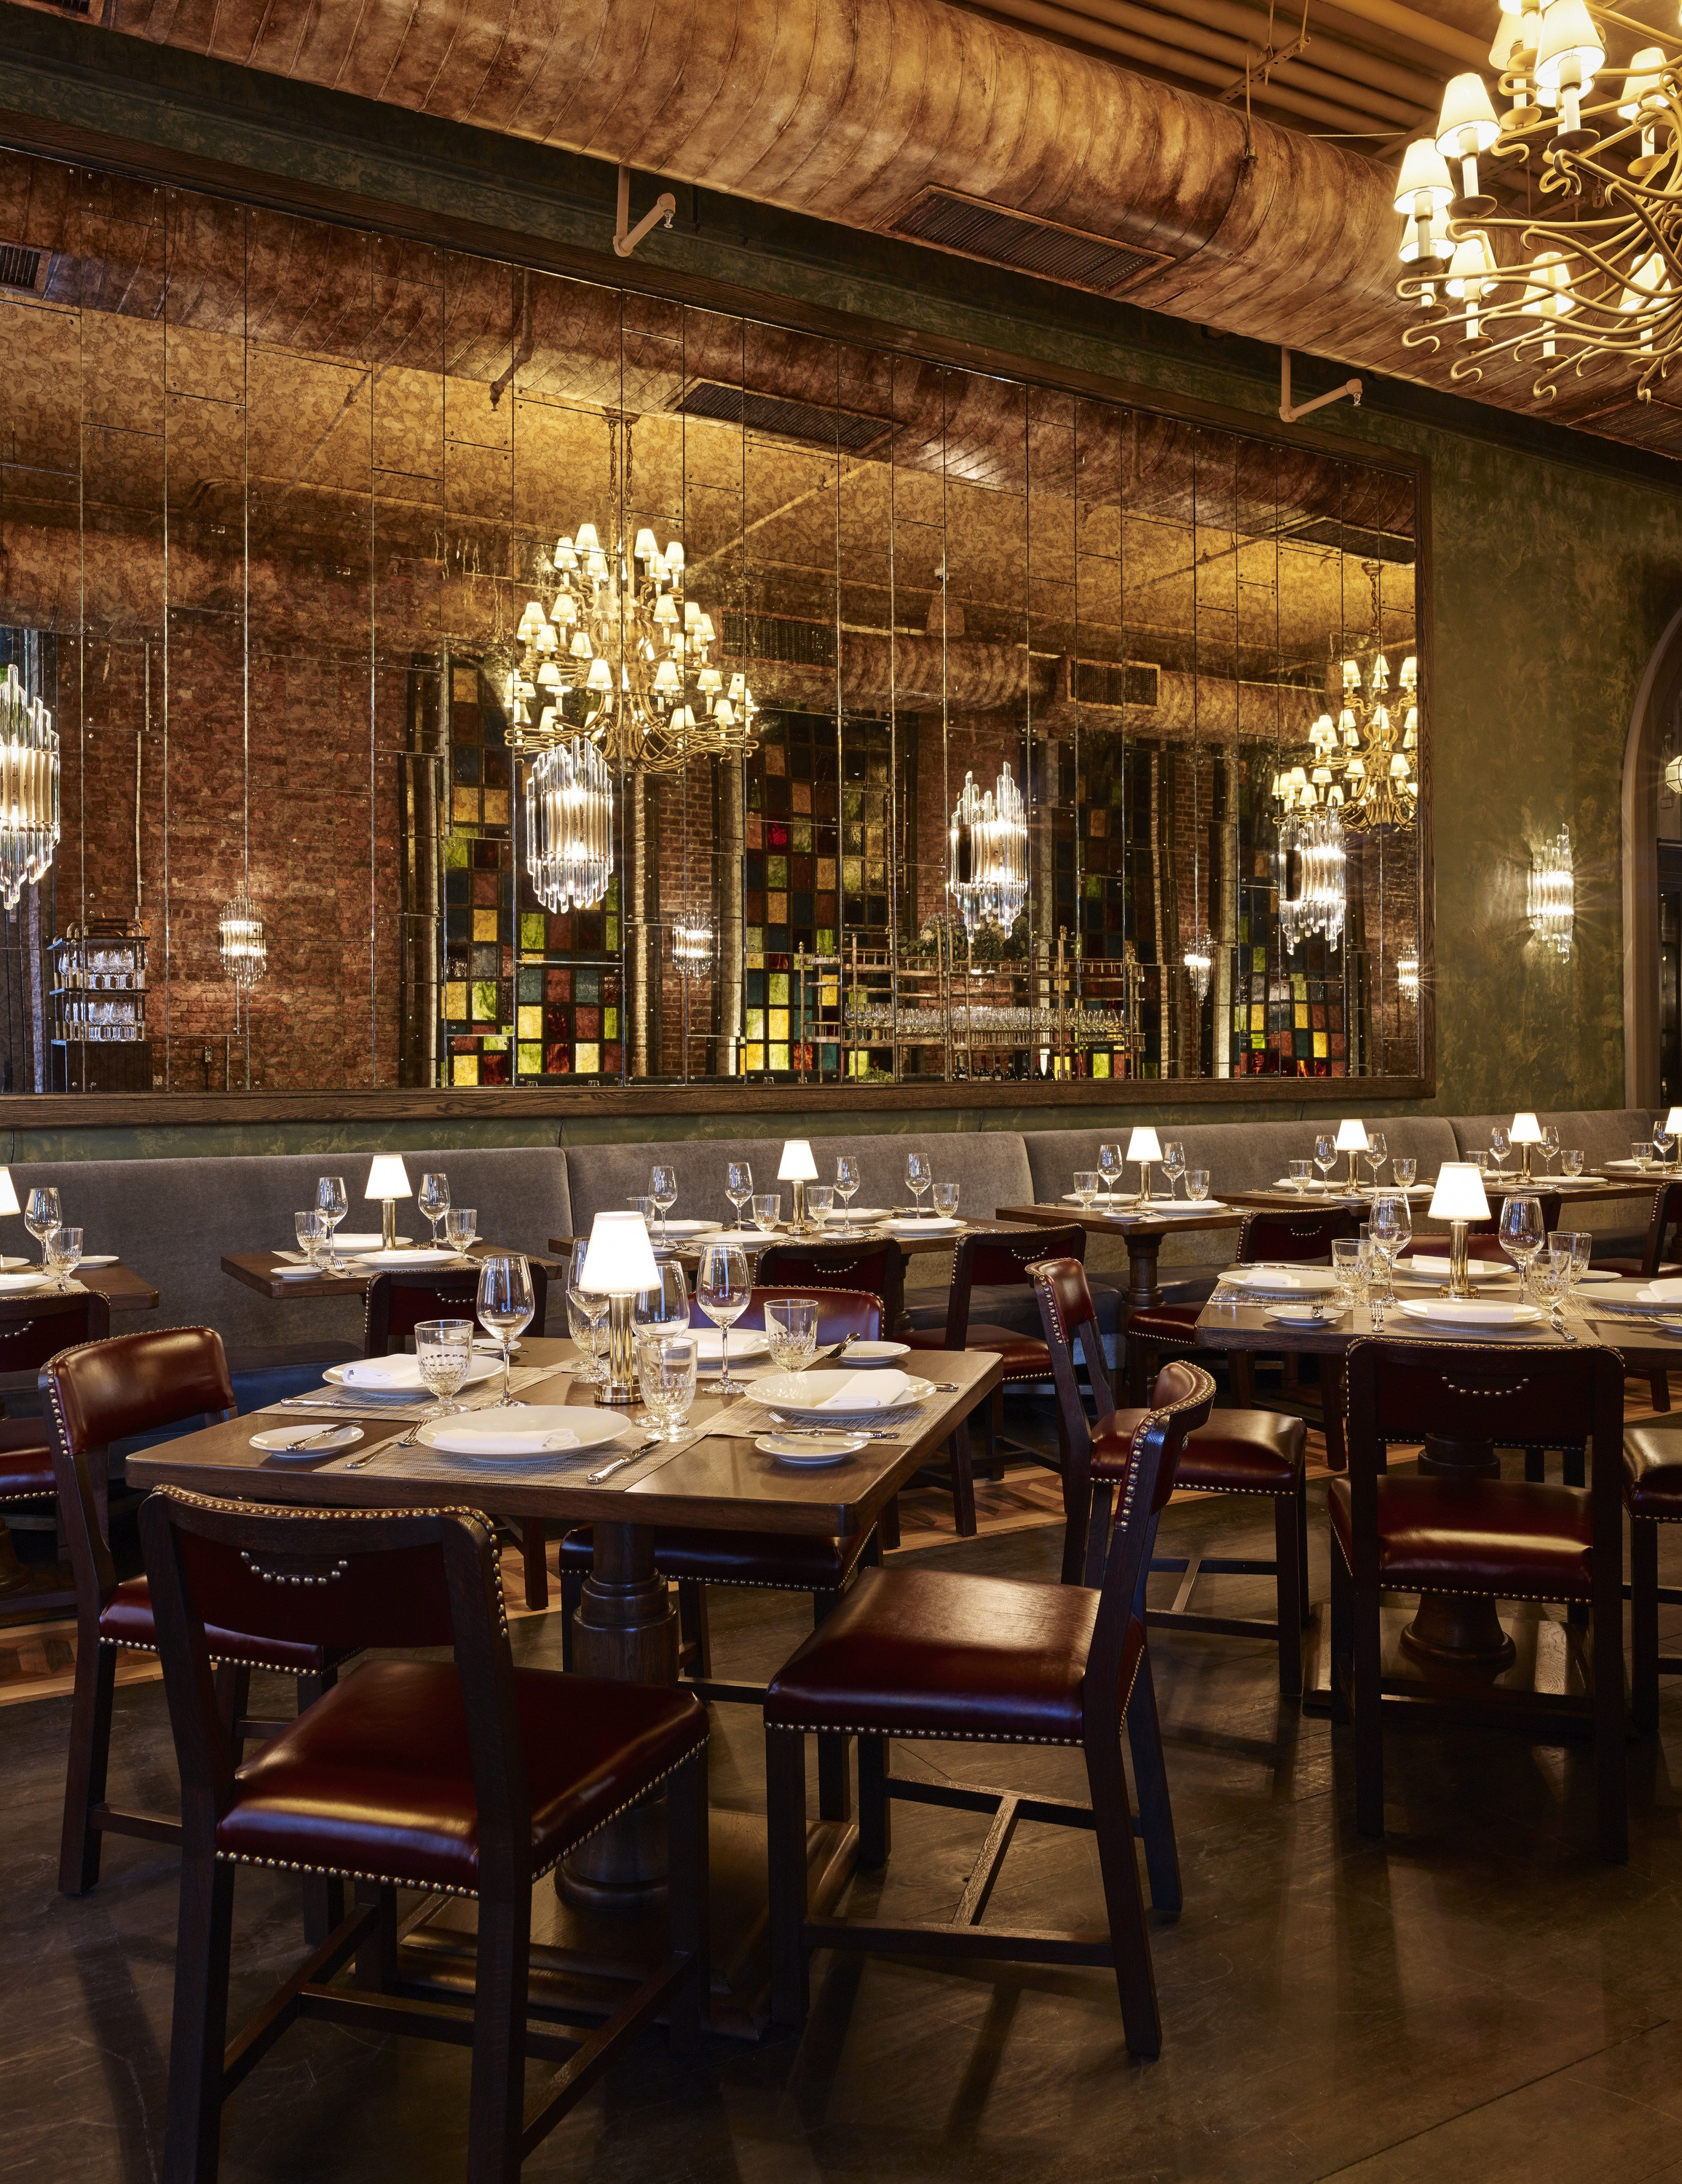 Christmas Eve Dinner Nyc  Where to find Christmas dinner and Christmas Eve dinner in NYC